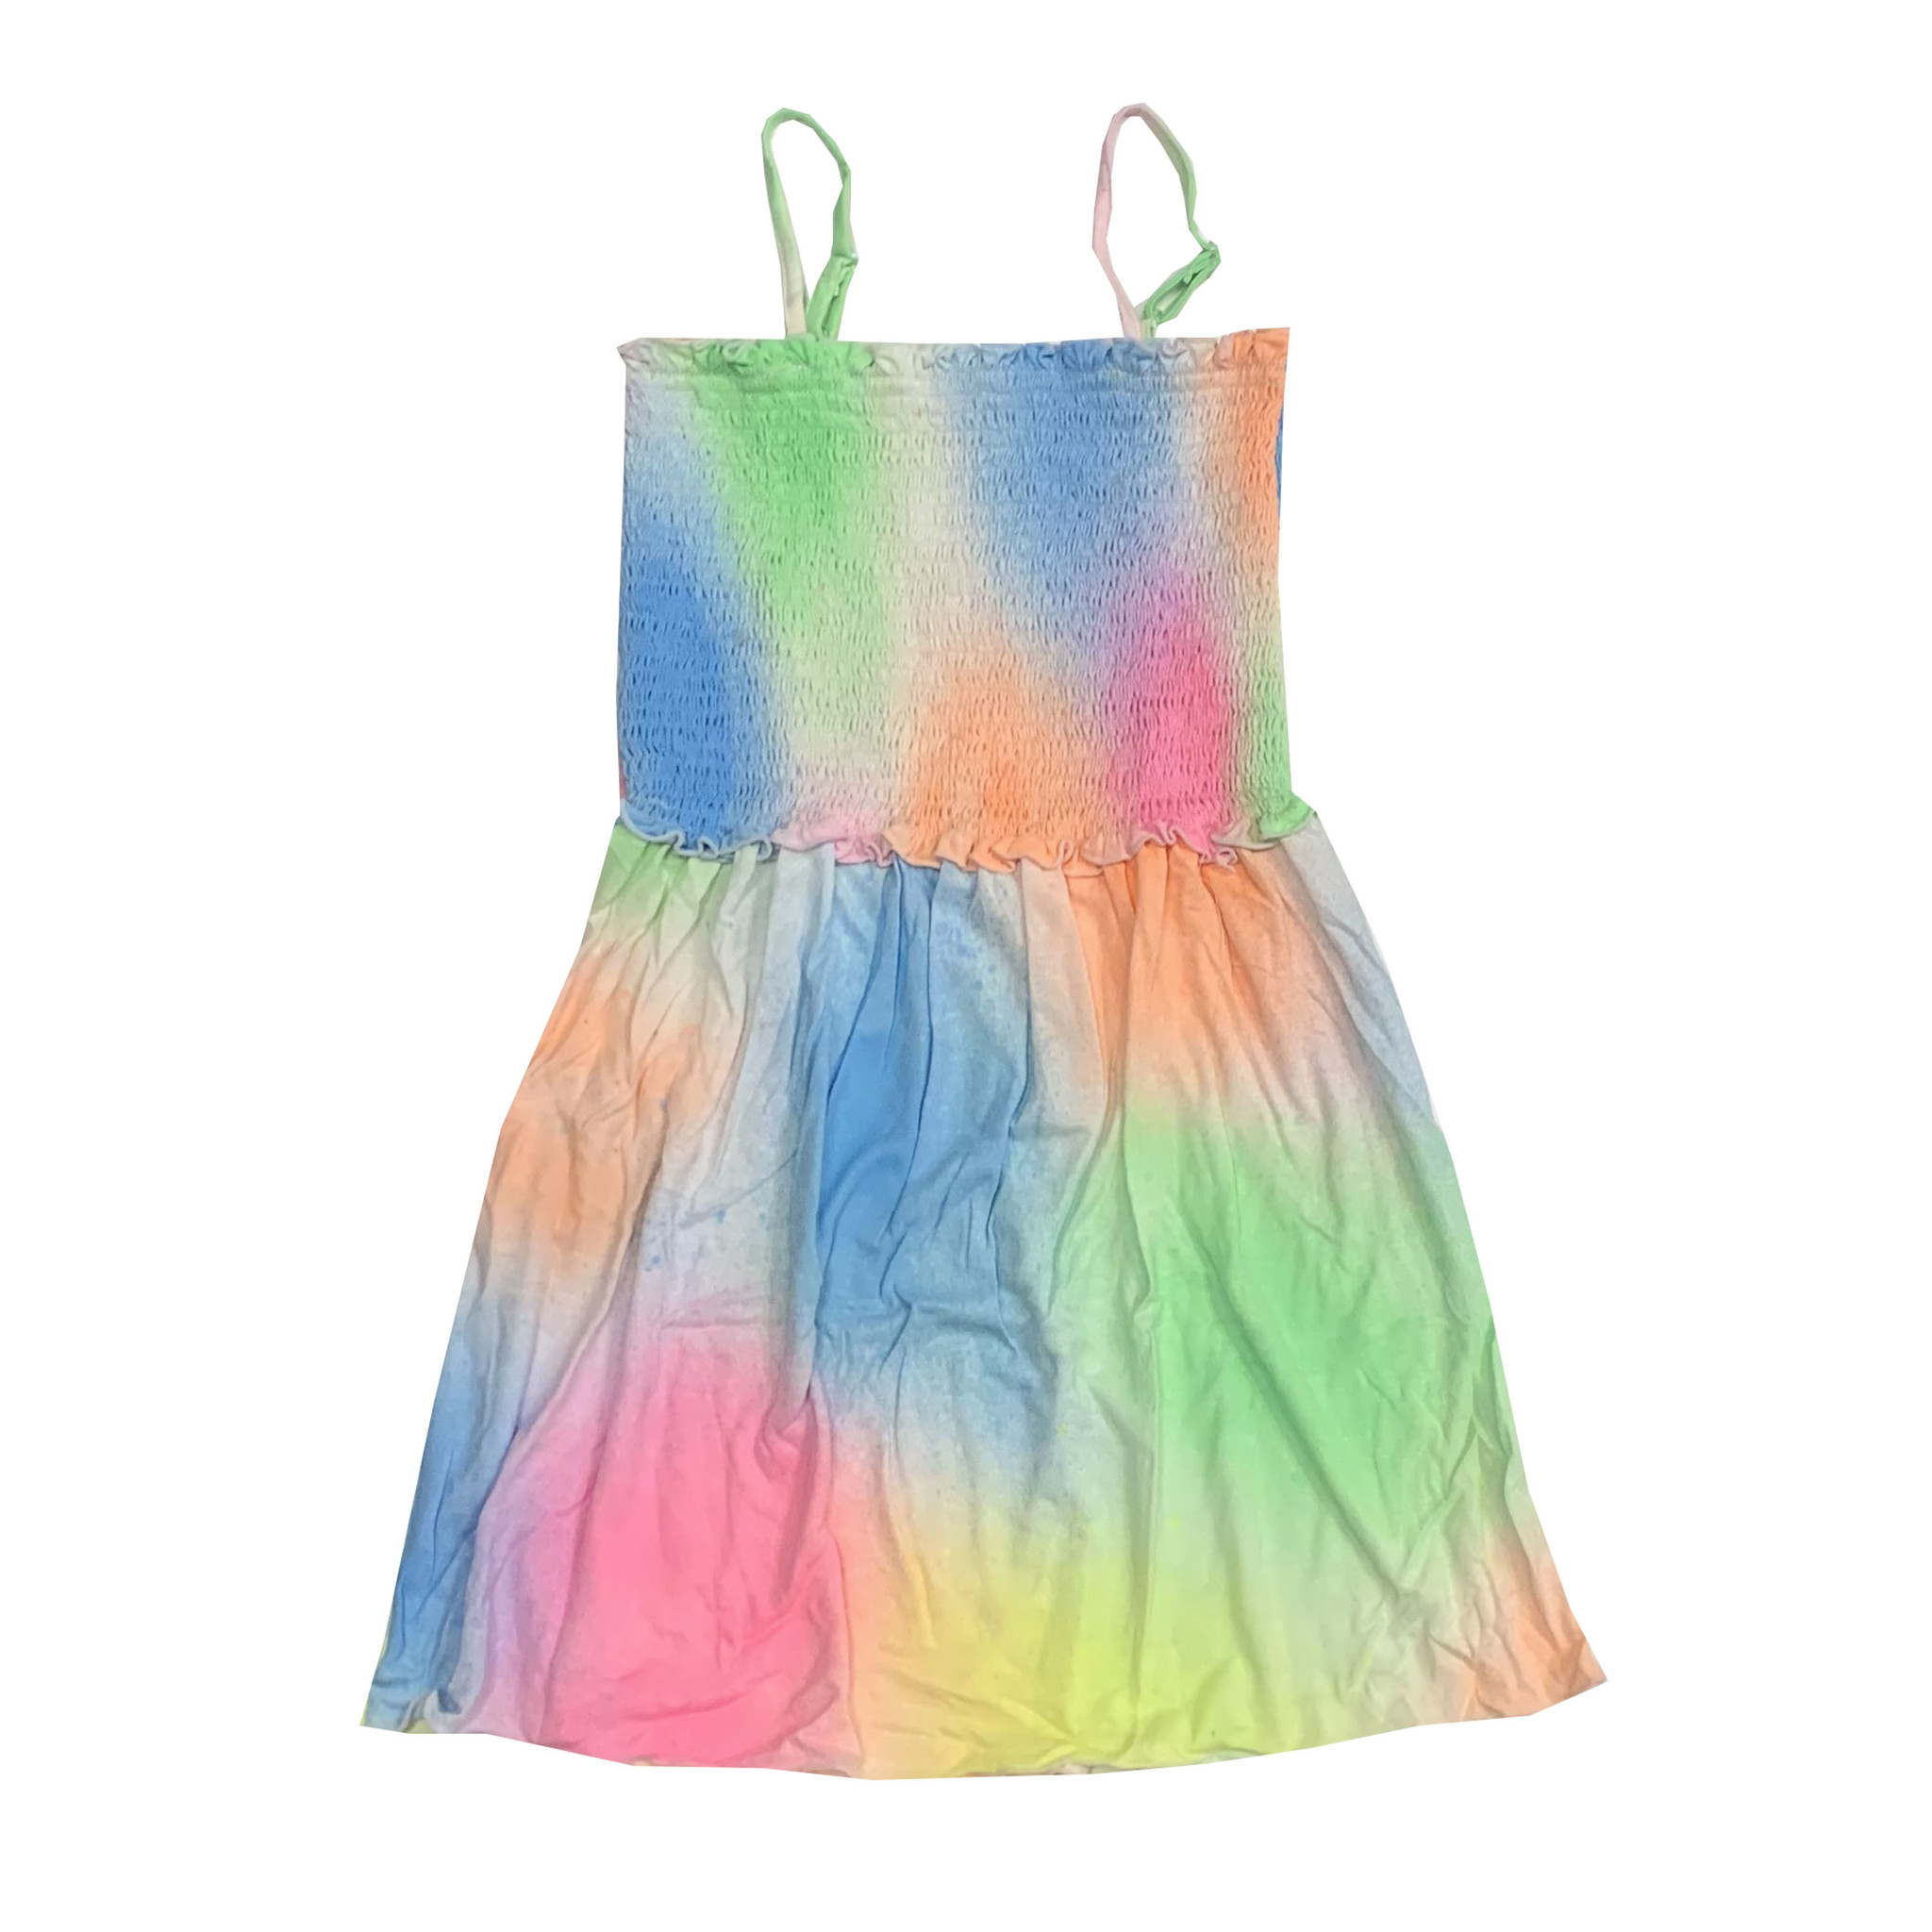 Flowers by Zoe Pastel Spray Ruched Dress